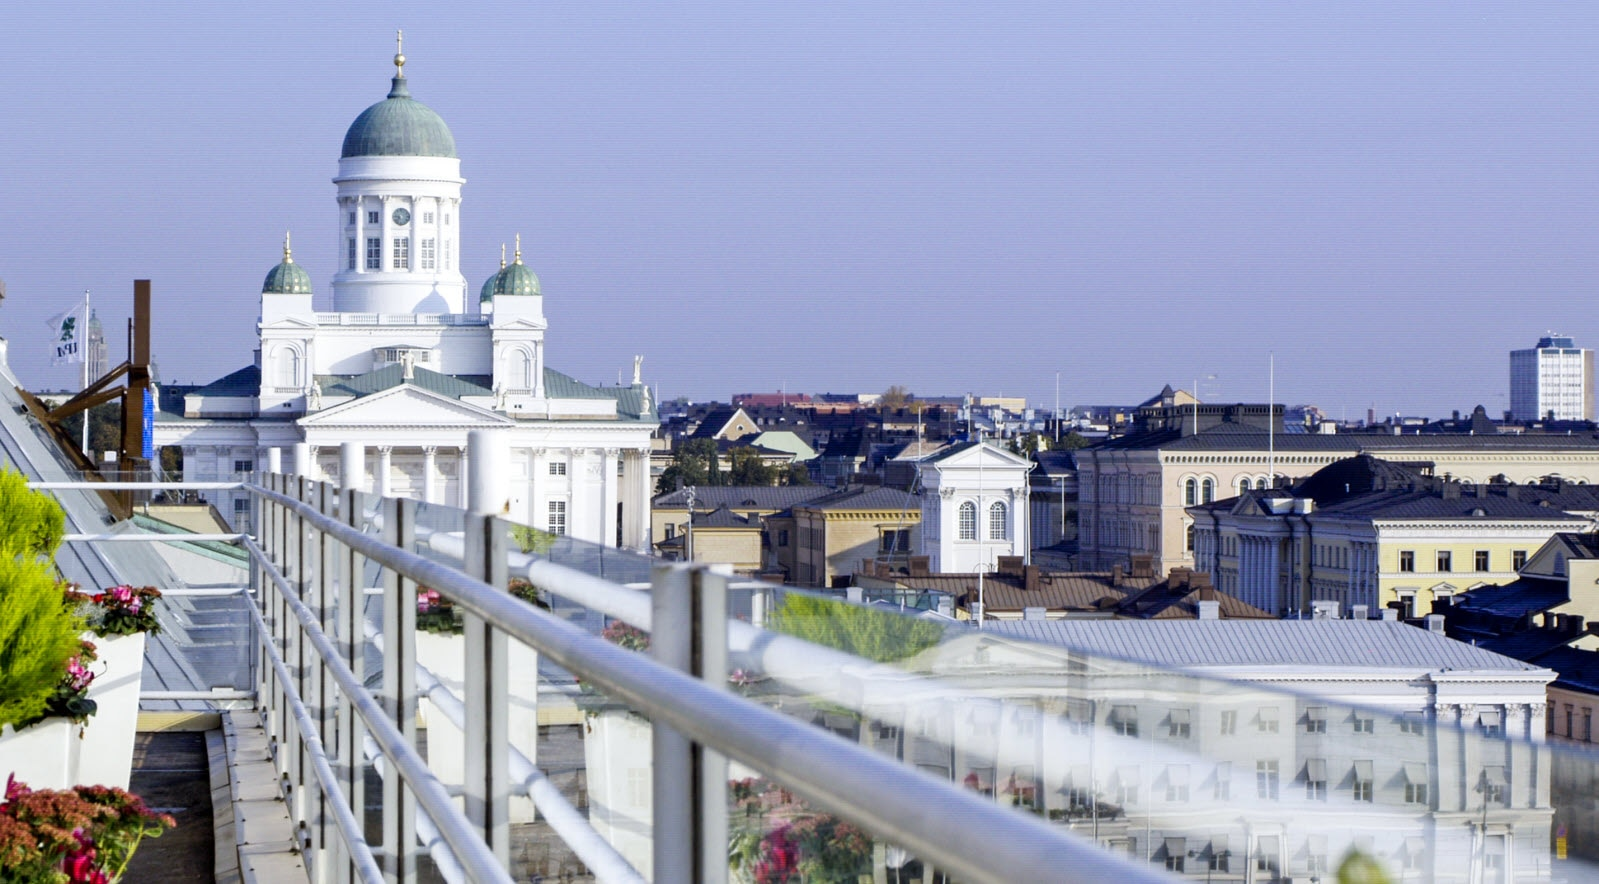 finland-helsinki-cathedral-view.jpg